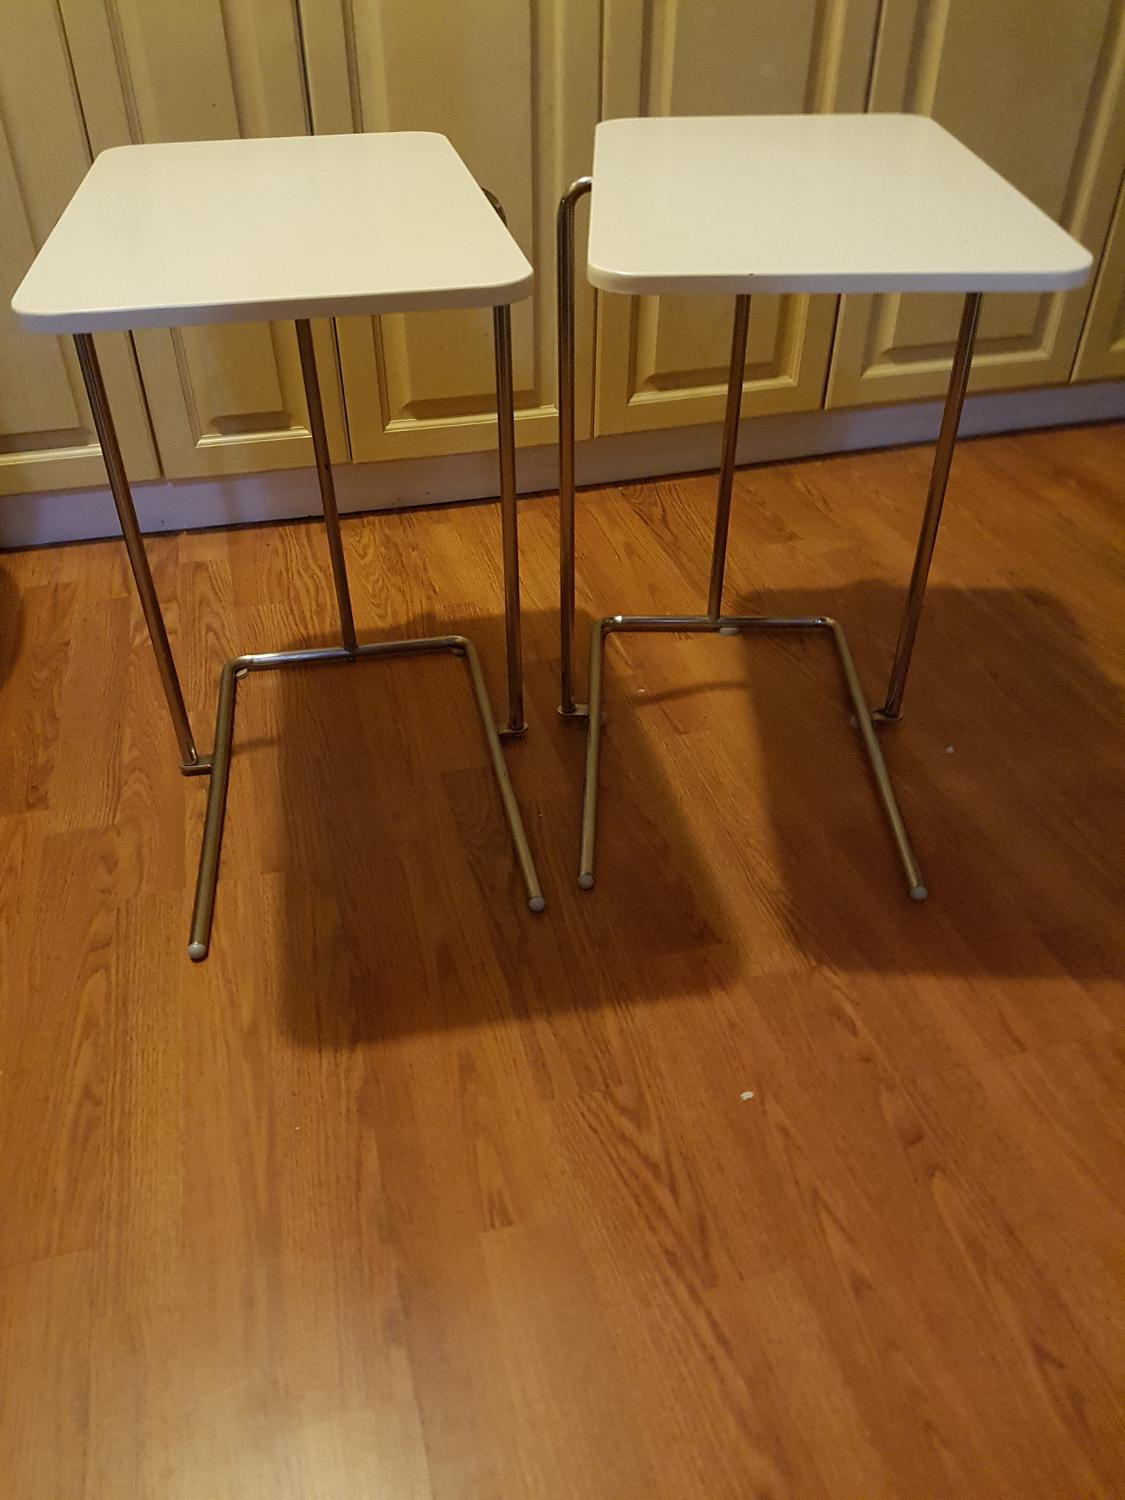 Best ikea white end tables for sale in barrie ontario for for Ikea ontario canada